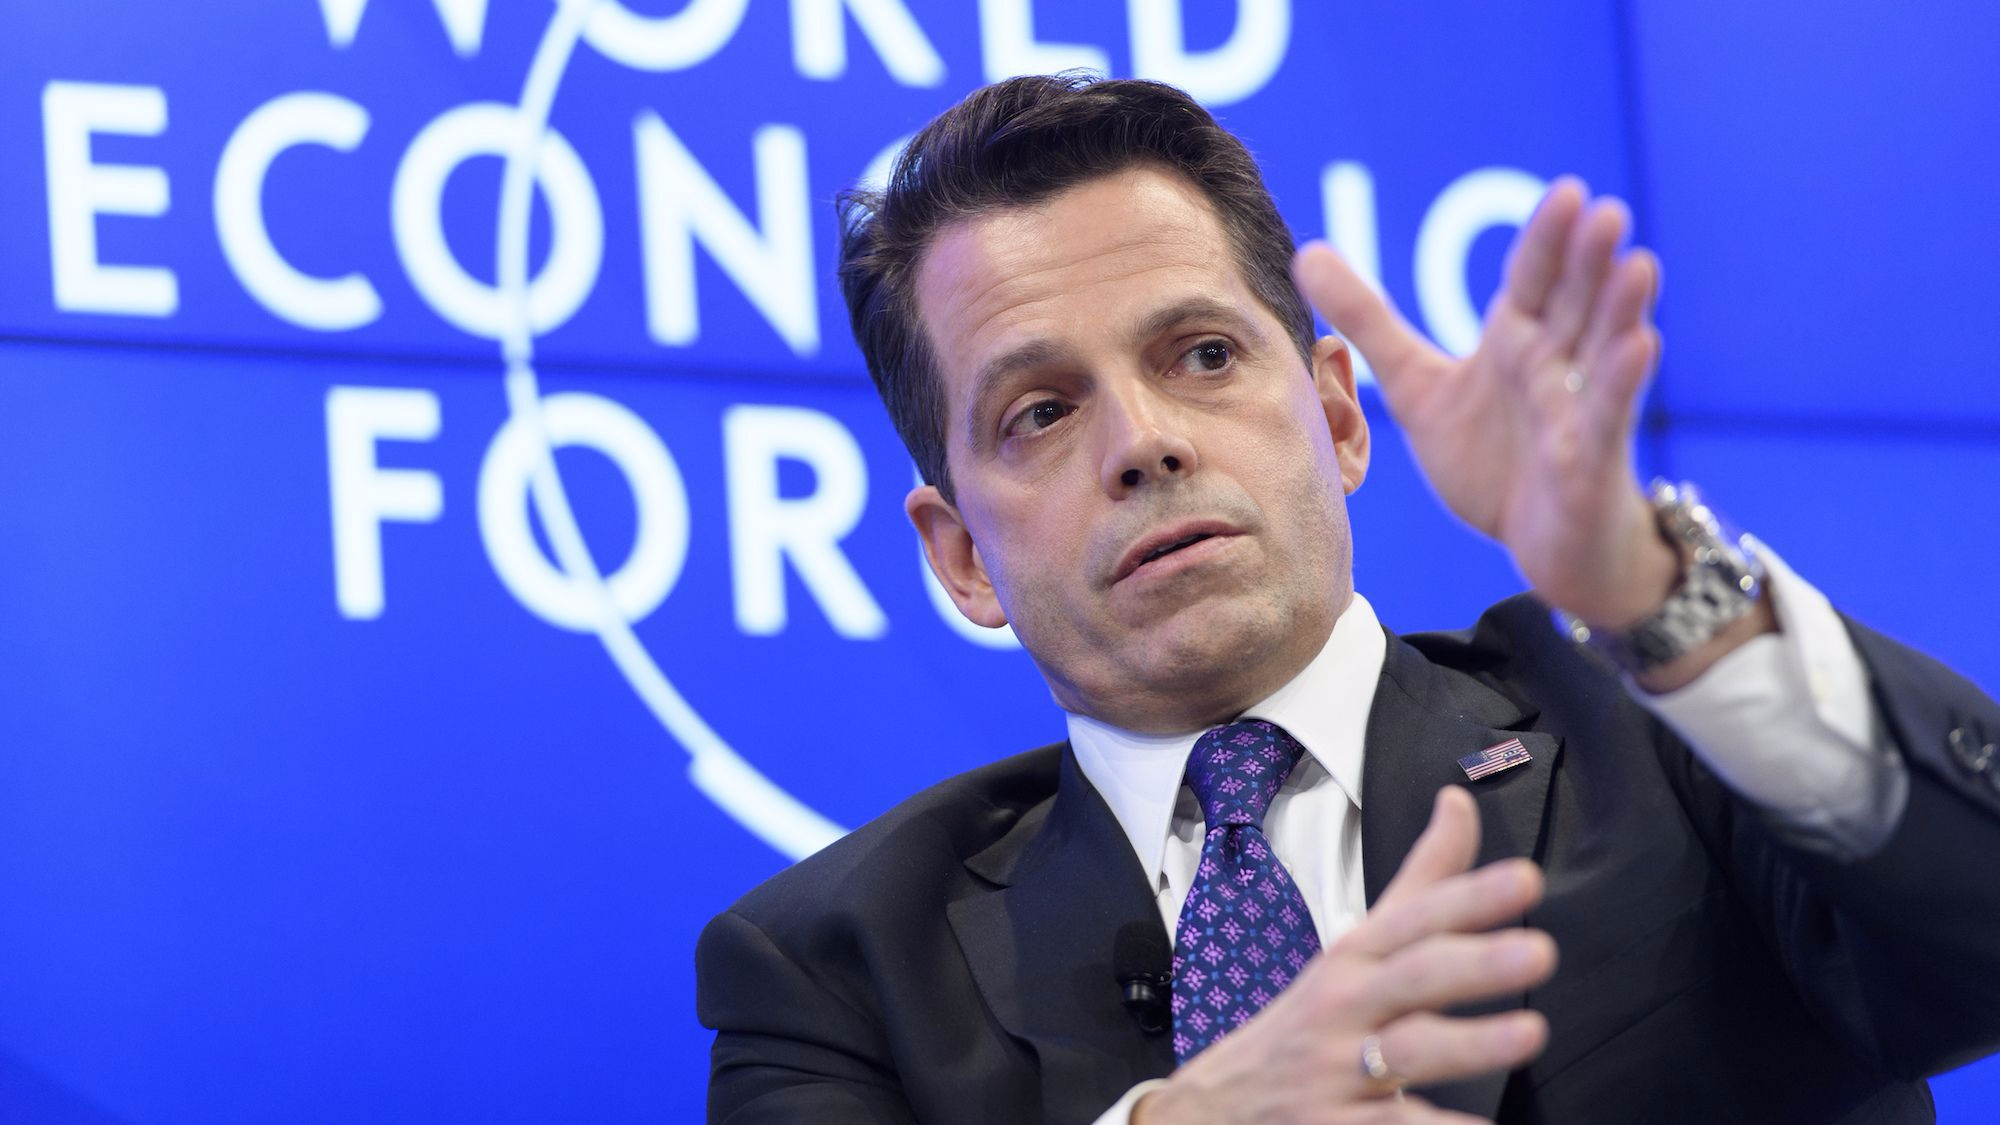 Scaramucci accepts CNN apology on Russian connections